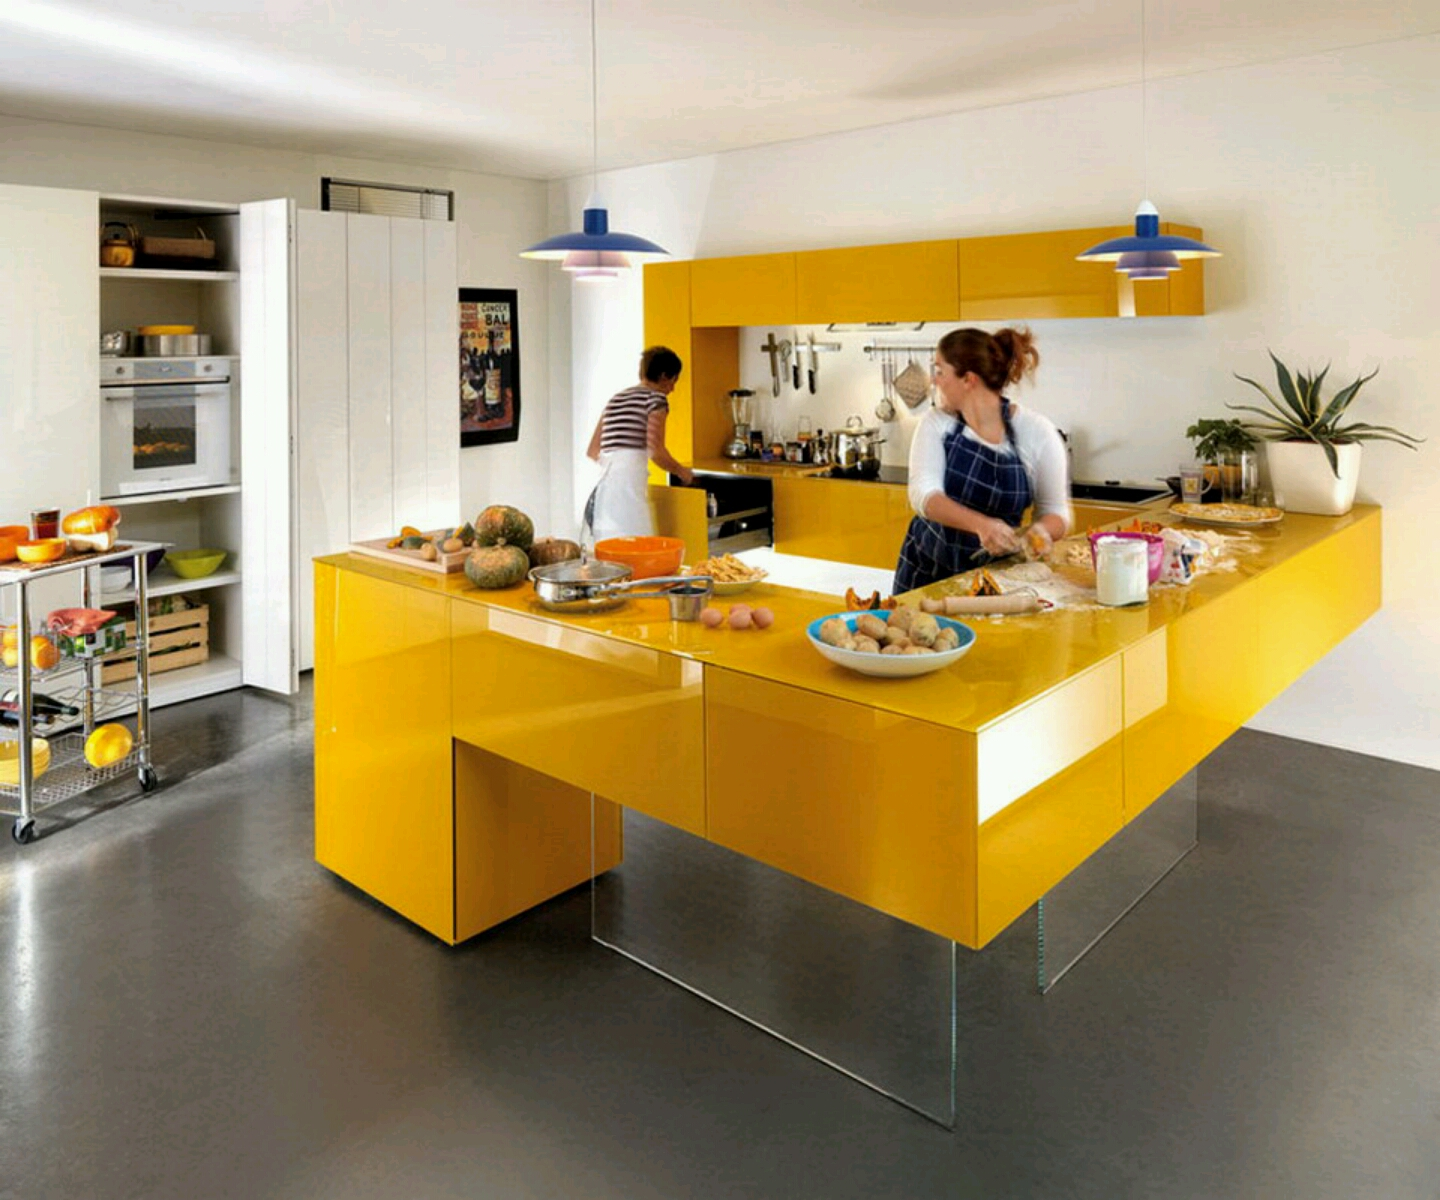 Modern kitchen cabinets designs ideas furniture gallery for Kitchen furniture ideas